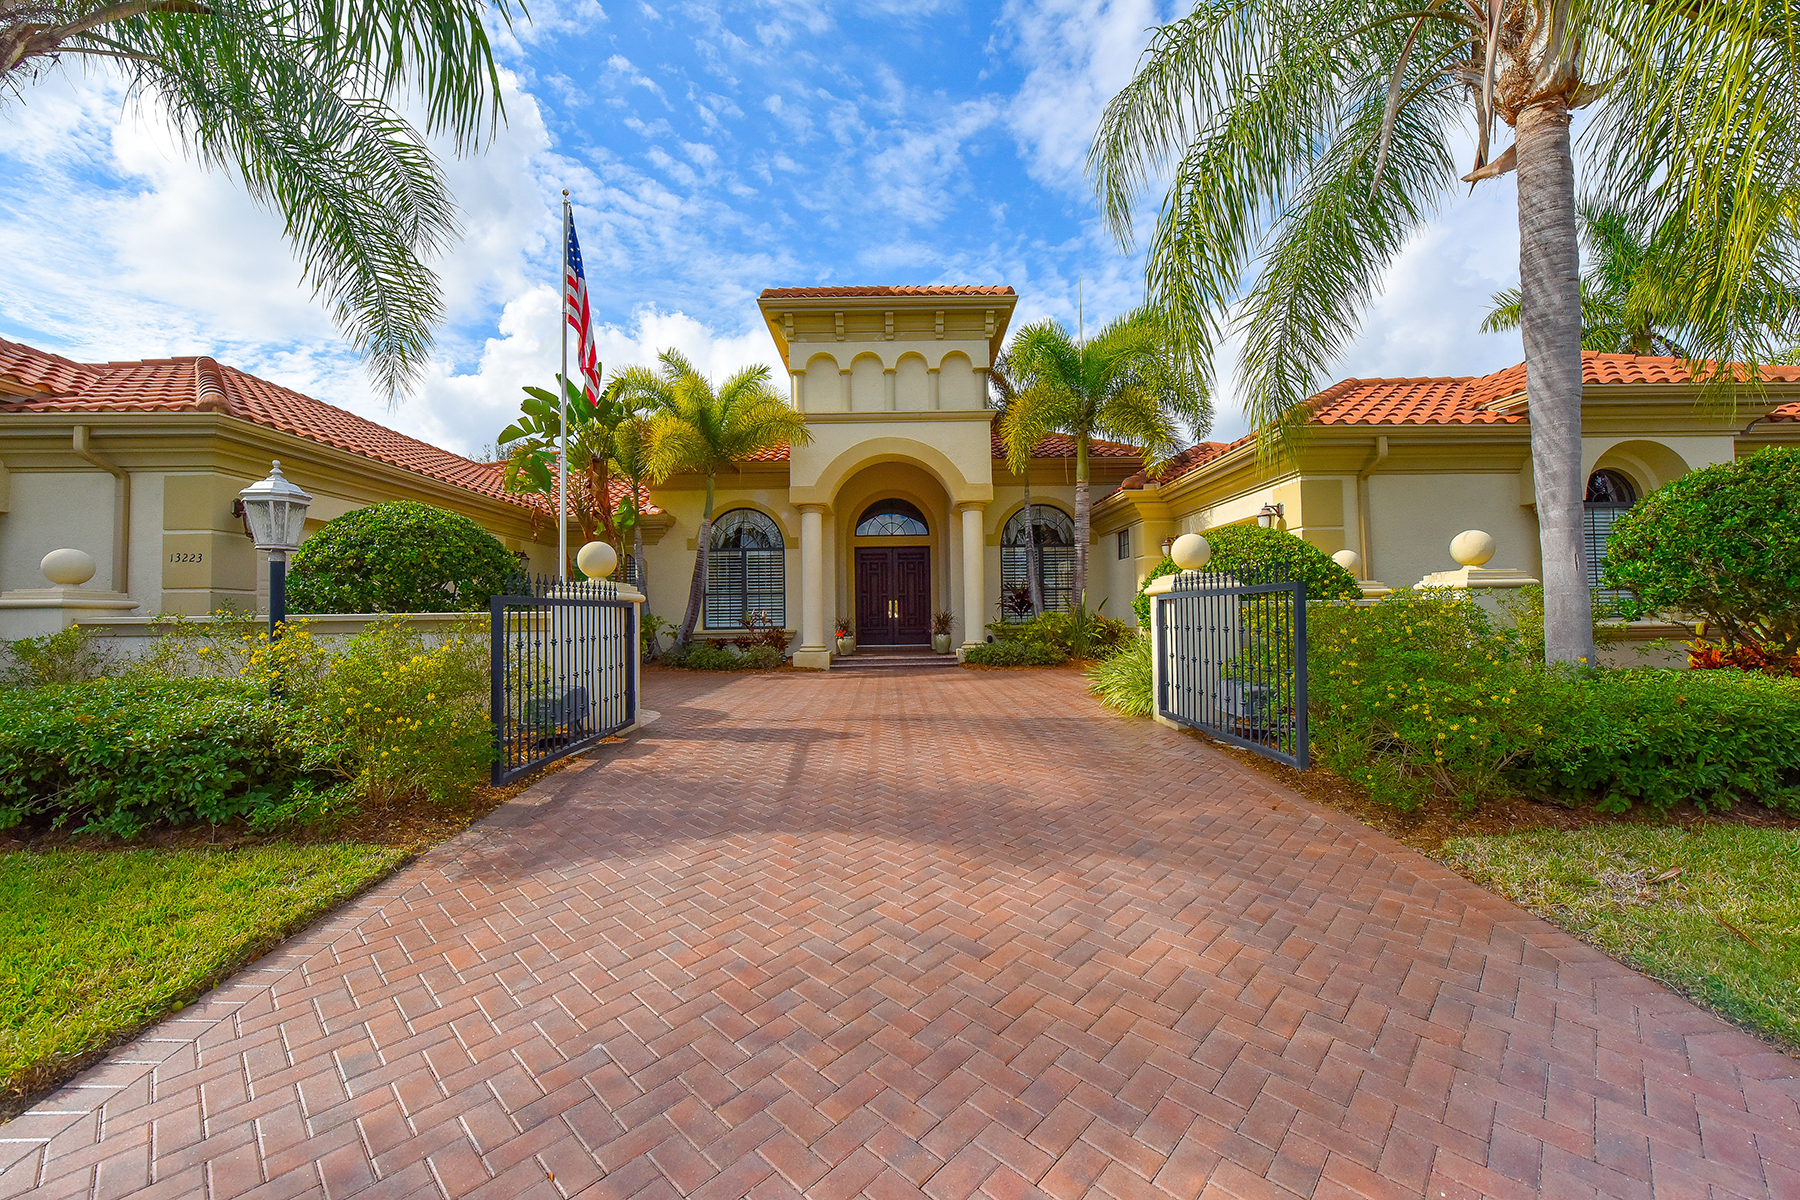 Single Family Home for Sale at PALMERS CREEK 13223 Palmers Creek Terr Lakewood Ranch, Florida, 34202 United States